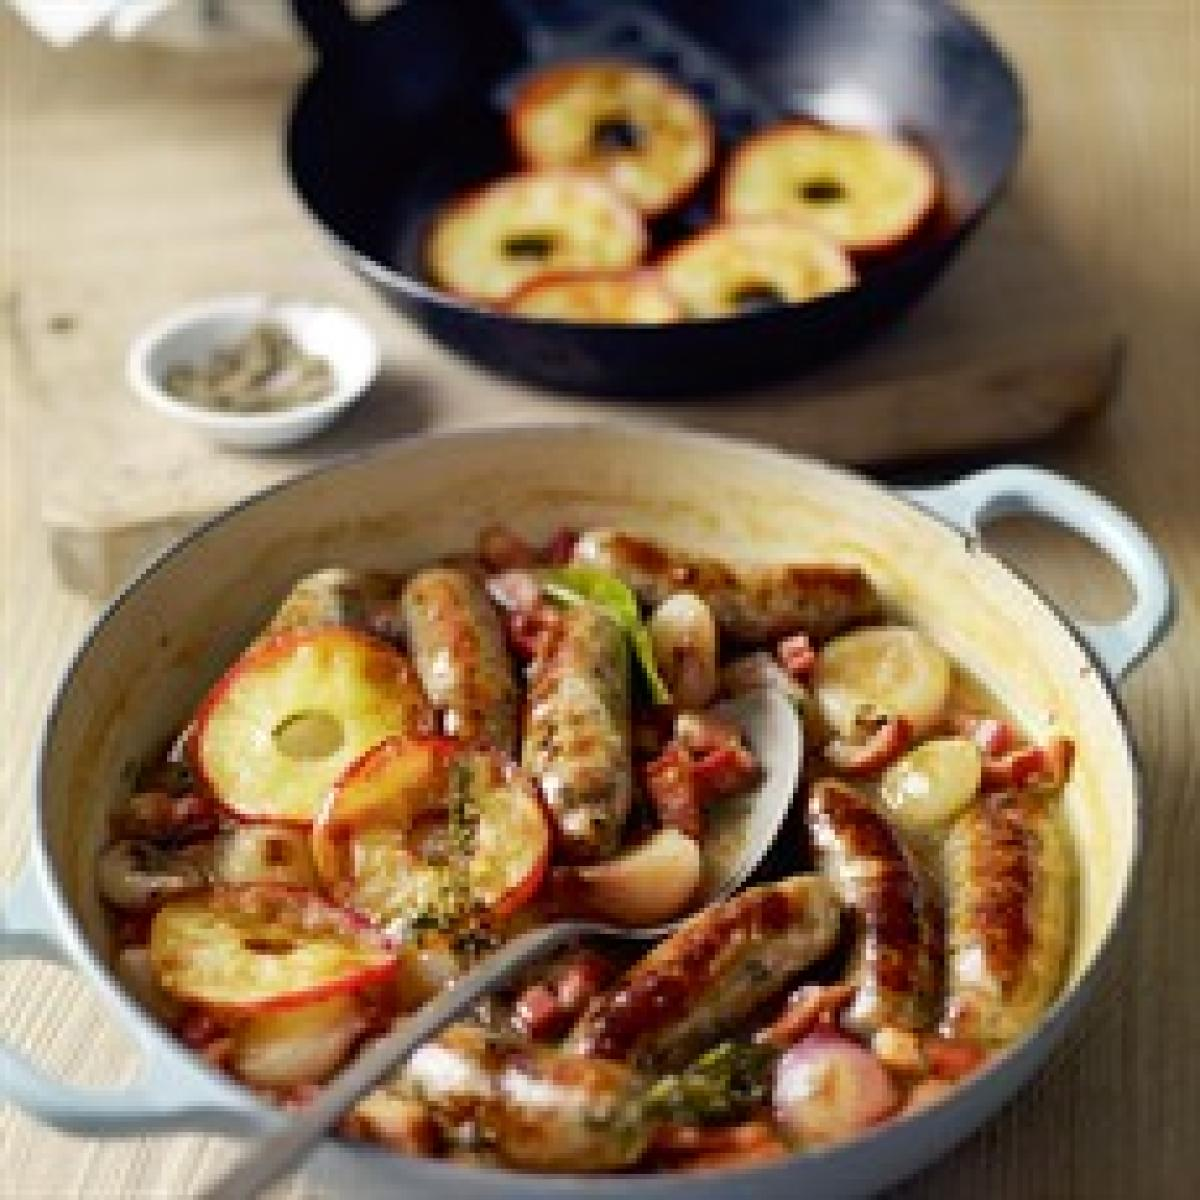 A picture of Delia's Bangers Braised in Cider recipe